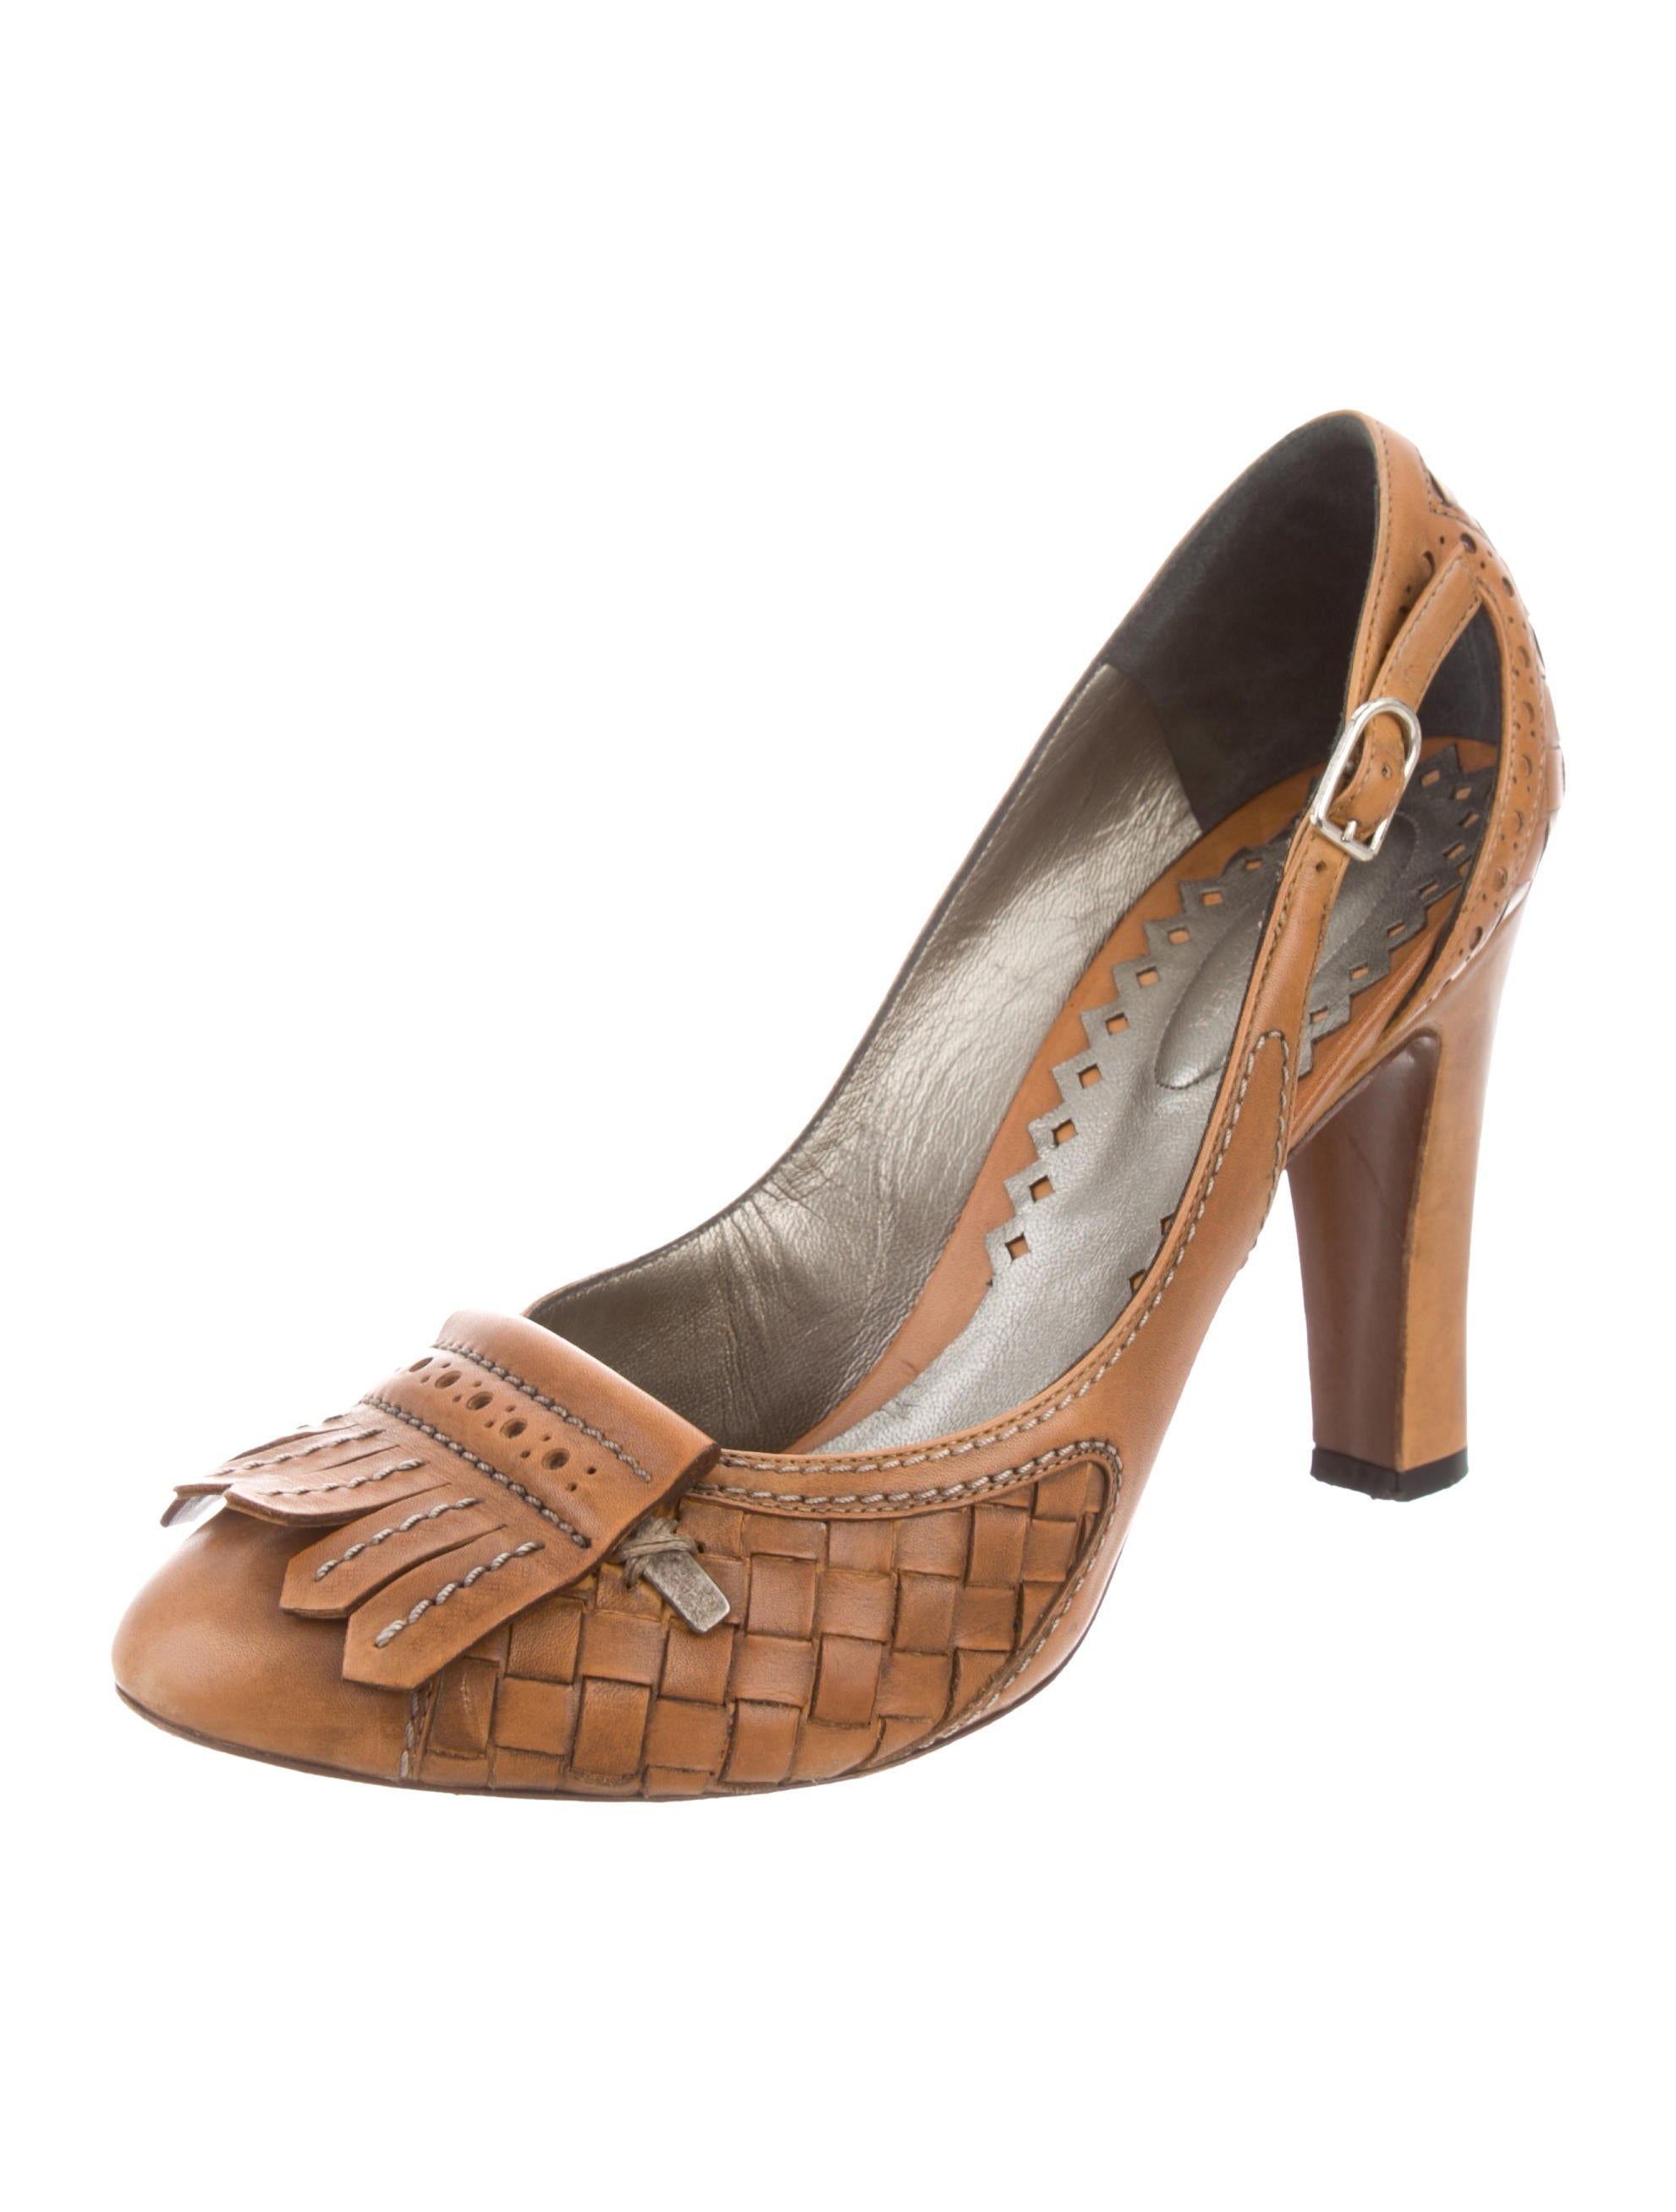 get authentic online free shipping authentic Bottega Veneta Intrecciato Kiltie Pumps pre order cheap price for sale under $60 good selling PK2kI